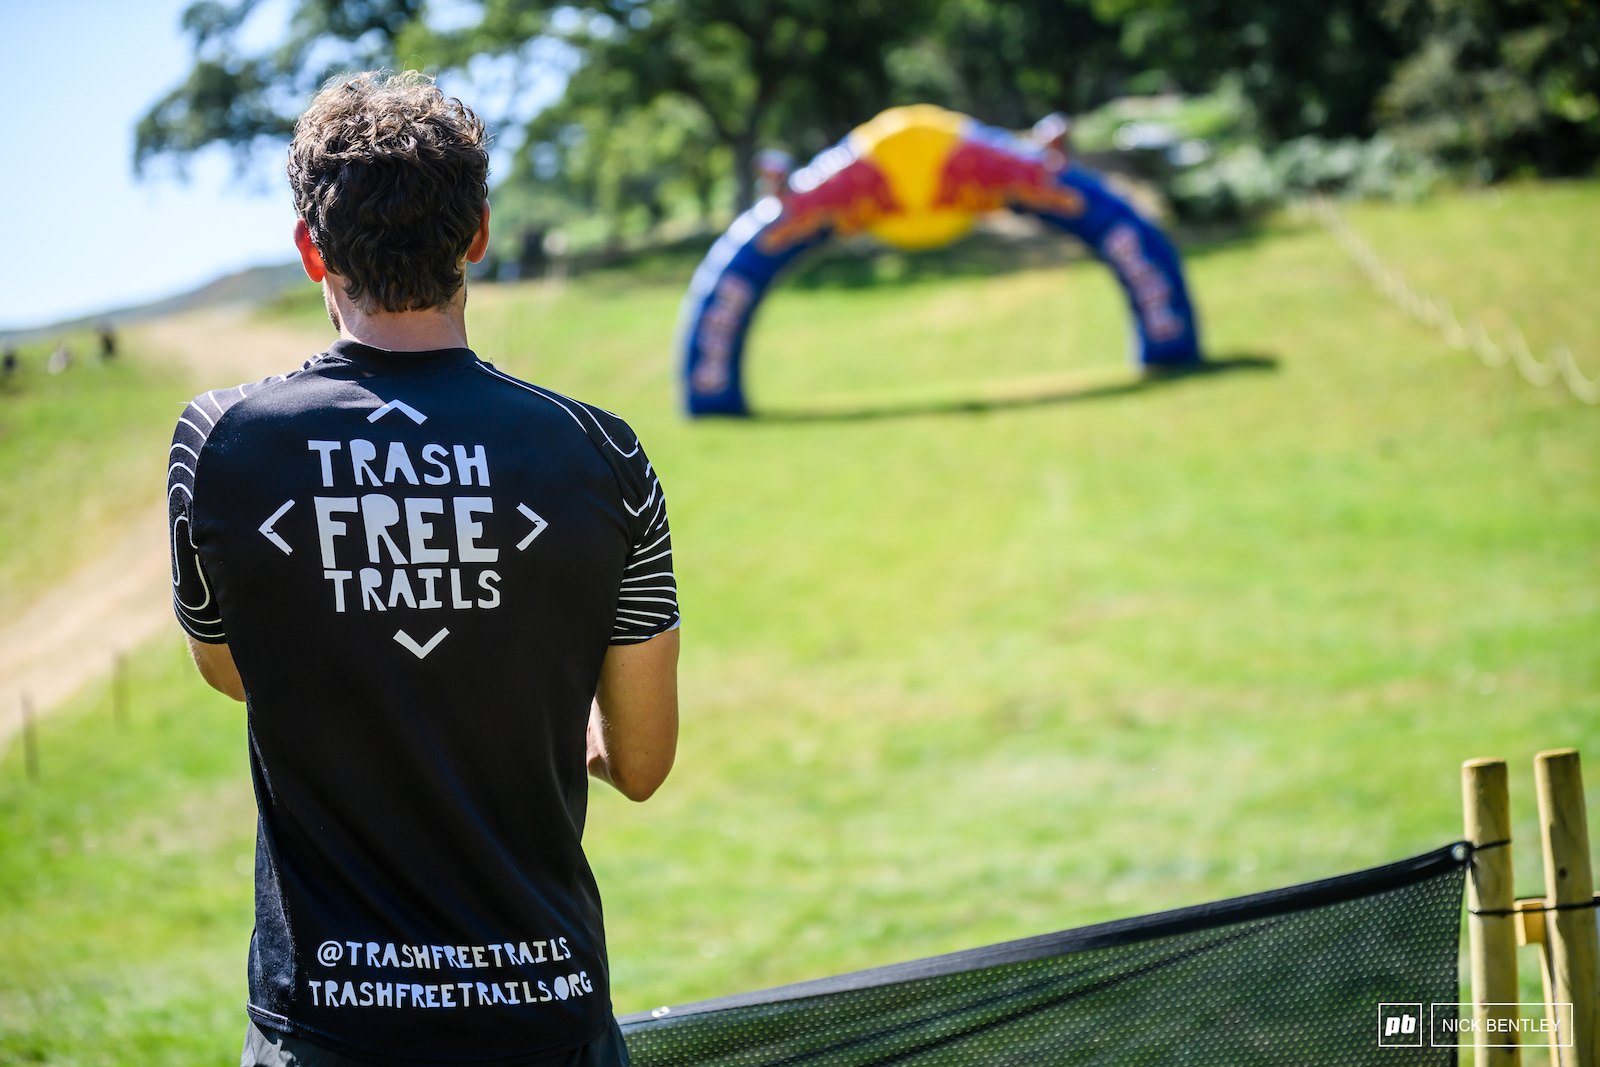 It s amazing to see such a high profile event align with such a worthy cause. If you haven t already check out Trash Free Trails on all the usual social media and more importantly always take your own rubbish home.